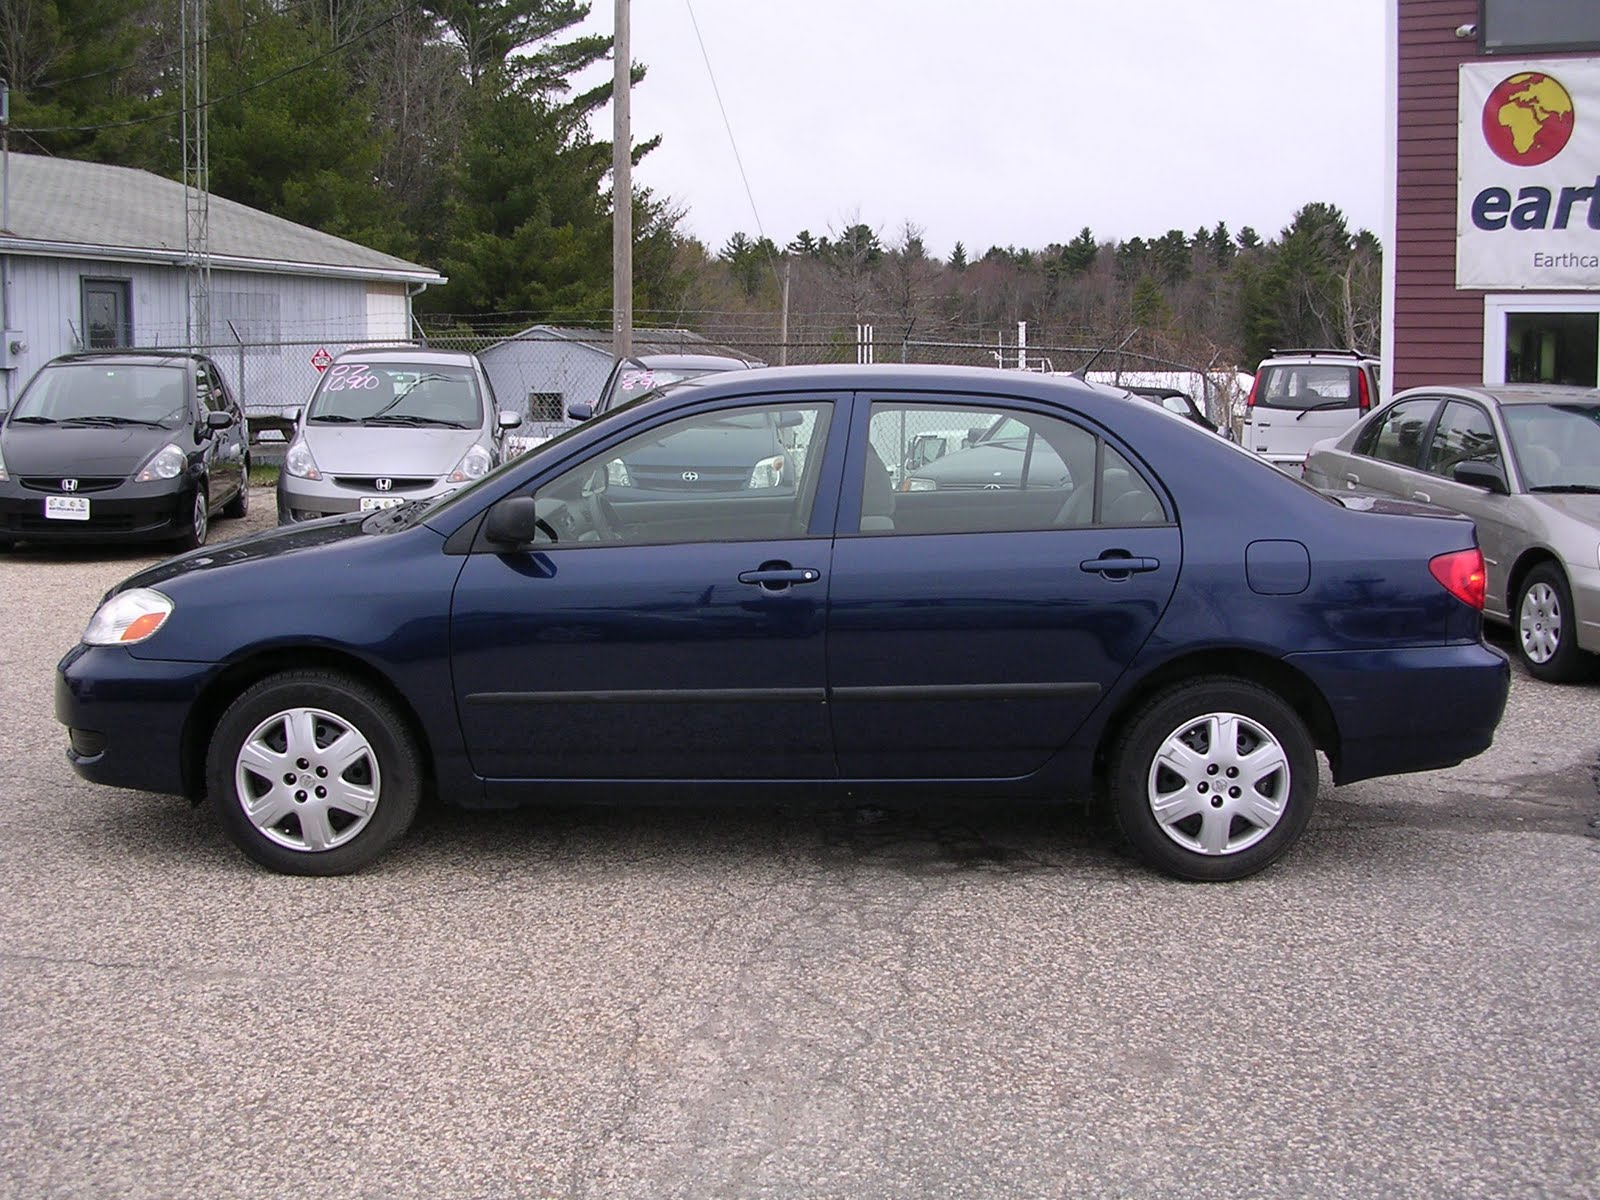 Earthy car of the week 2005 blue toyota corolla